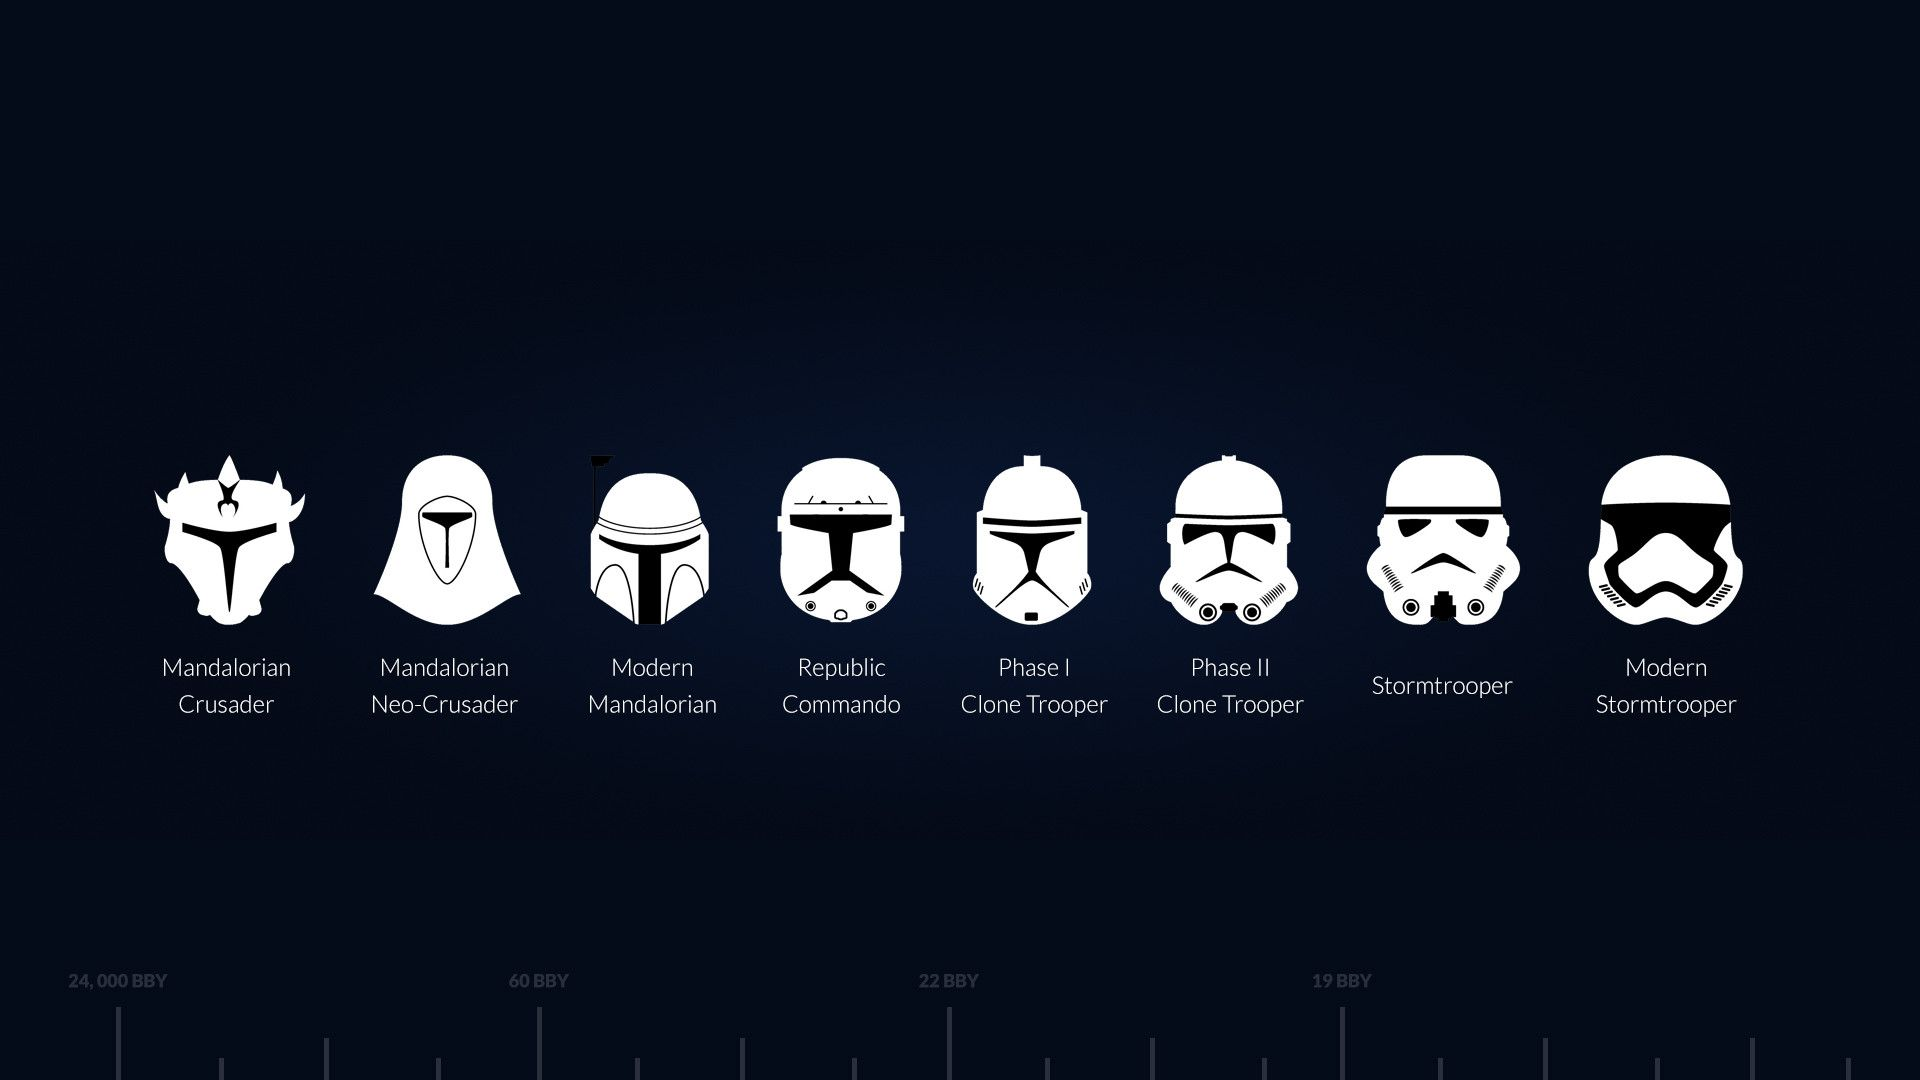 Storm Troopers Evolution Hd Wallpaper 1920x1080 Id 55918 Star Wars Wallpaper Star Wars Helmet Star Wars Background